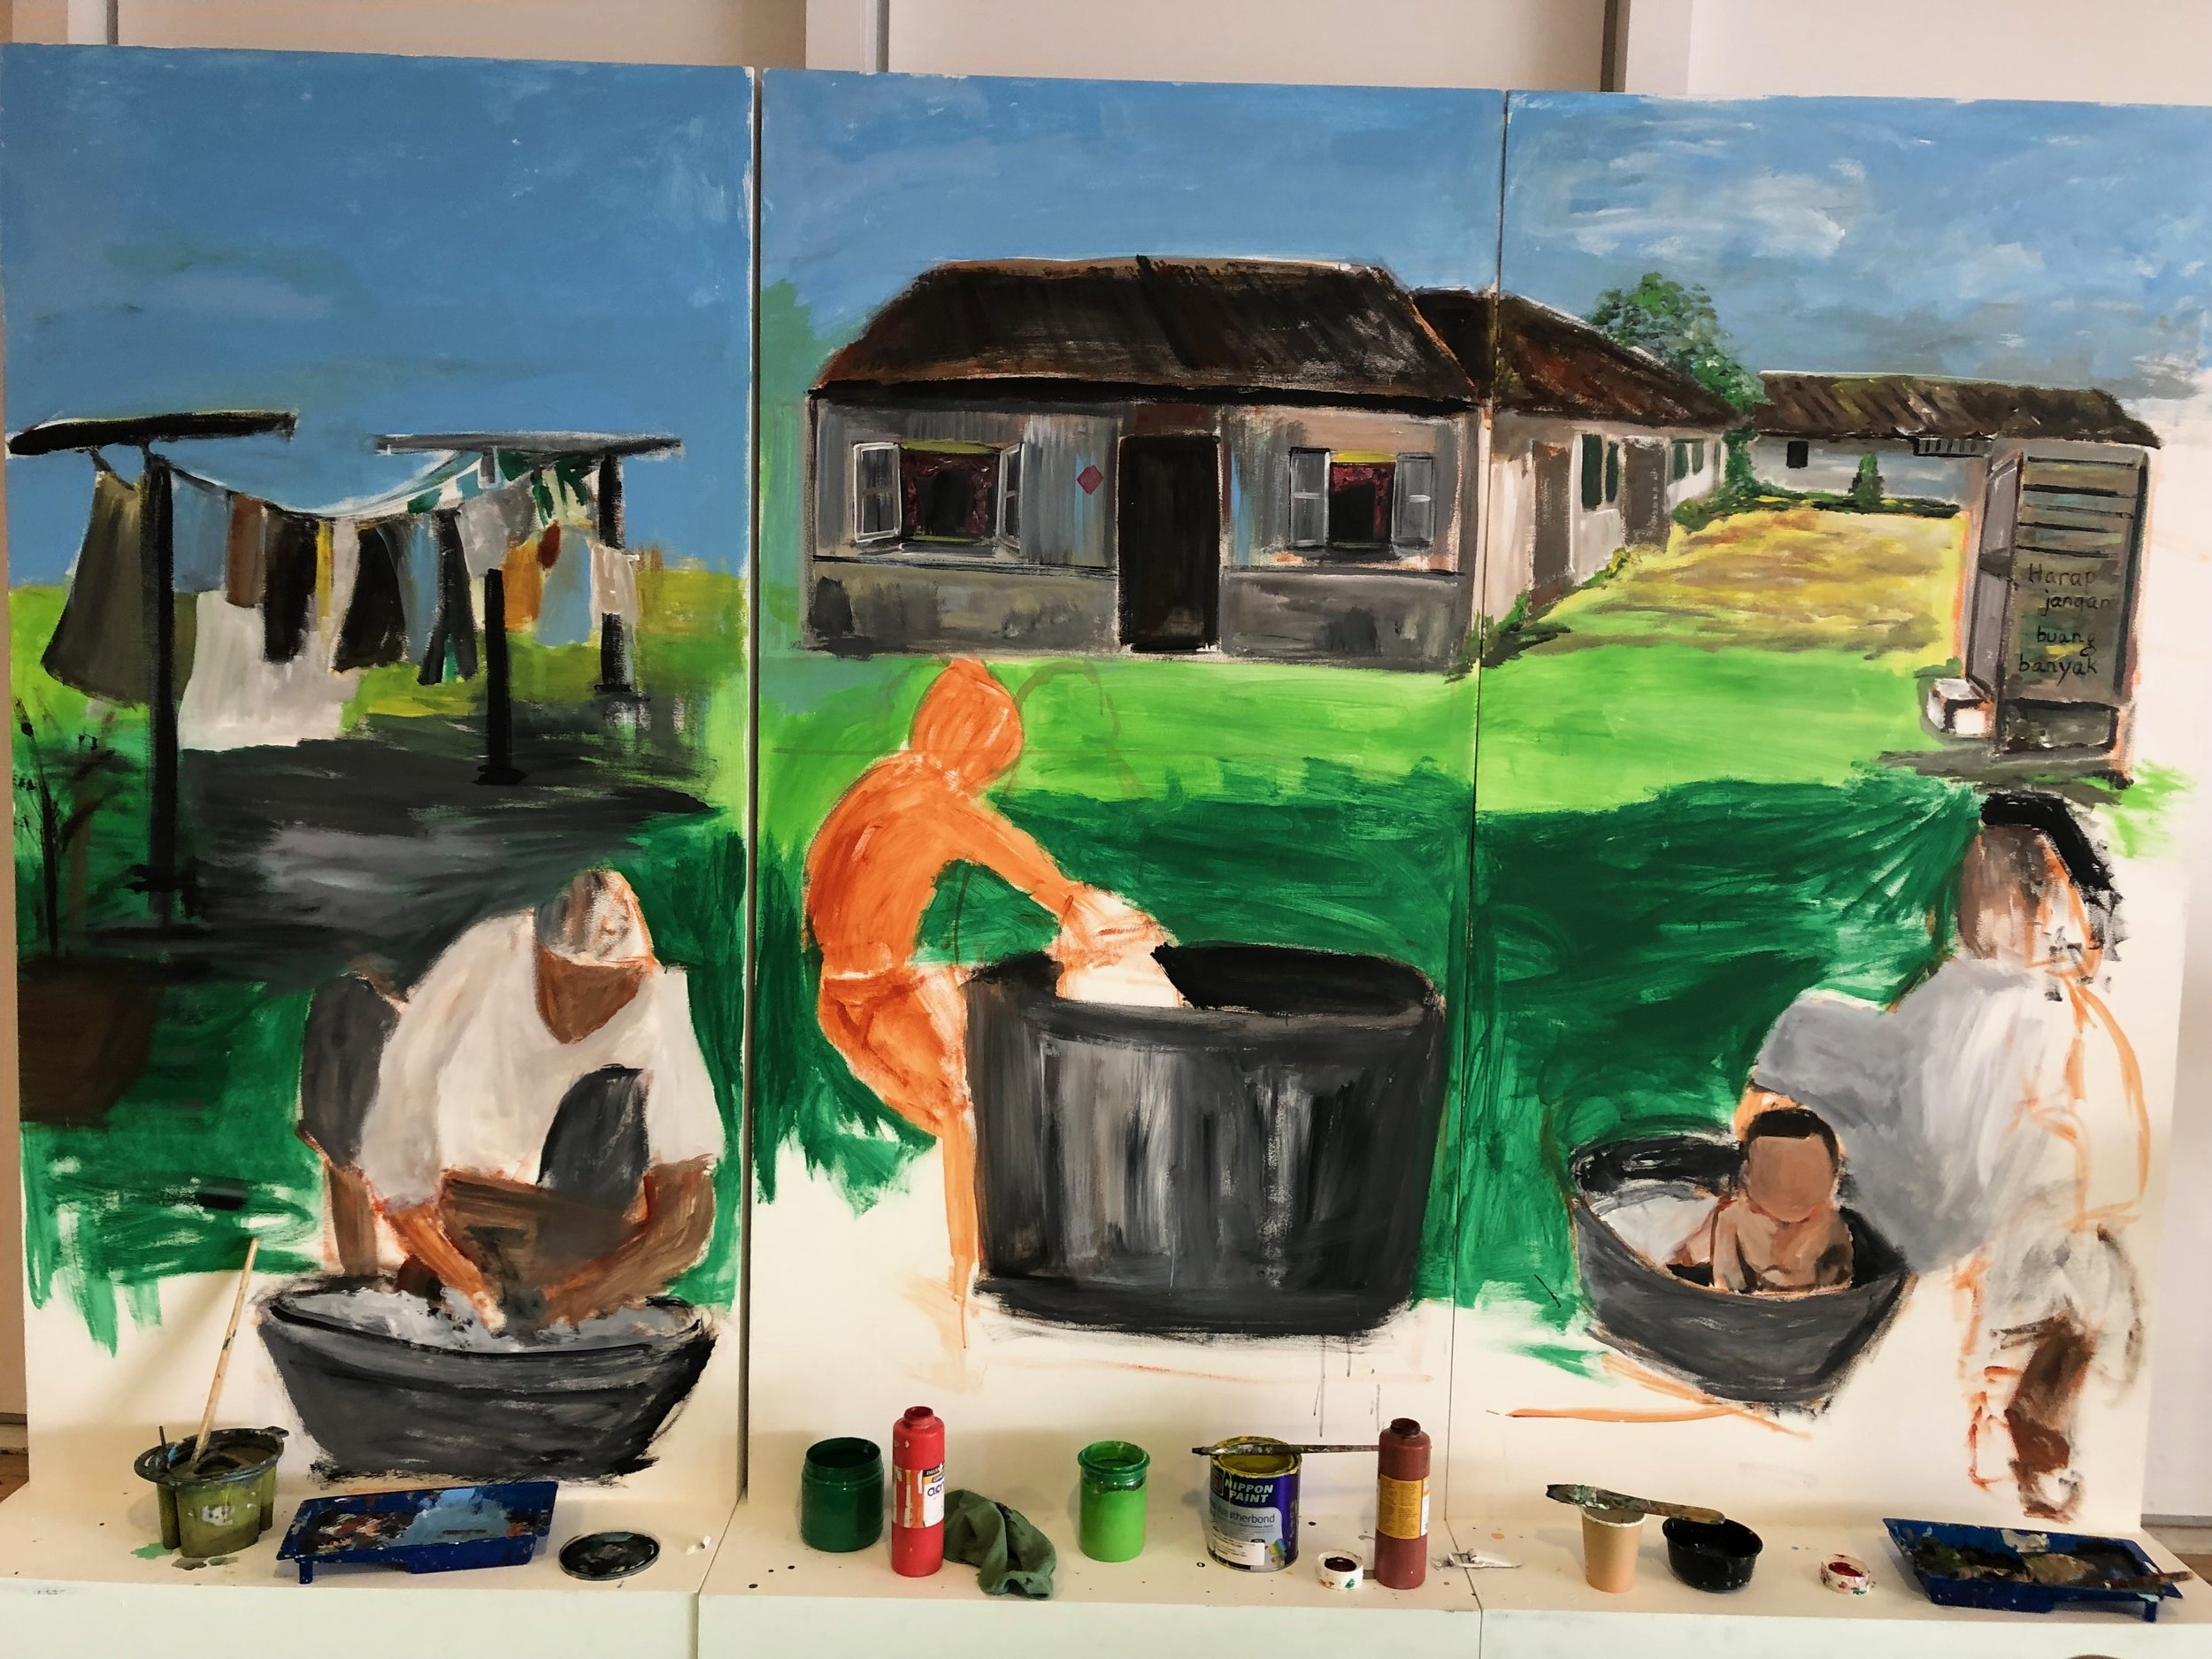 Does this look familiar? The concept is that of a kampong or village.